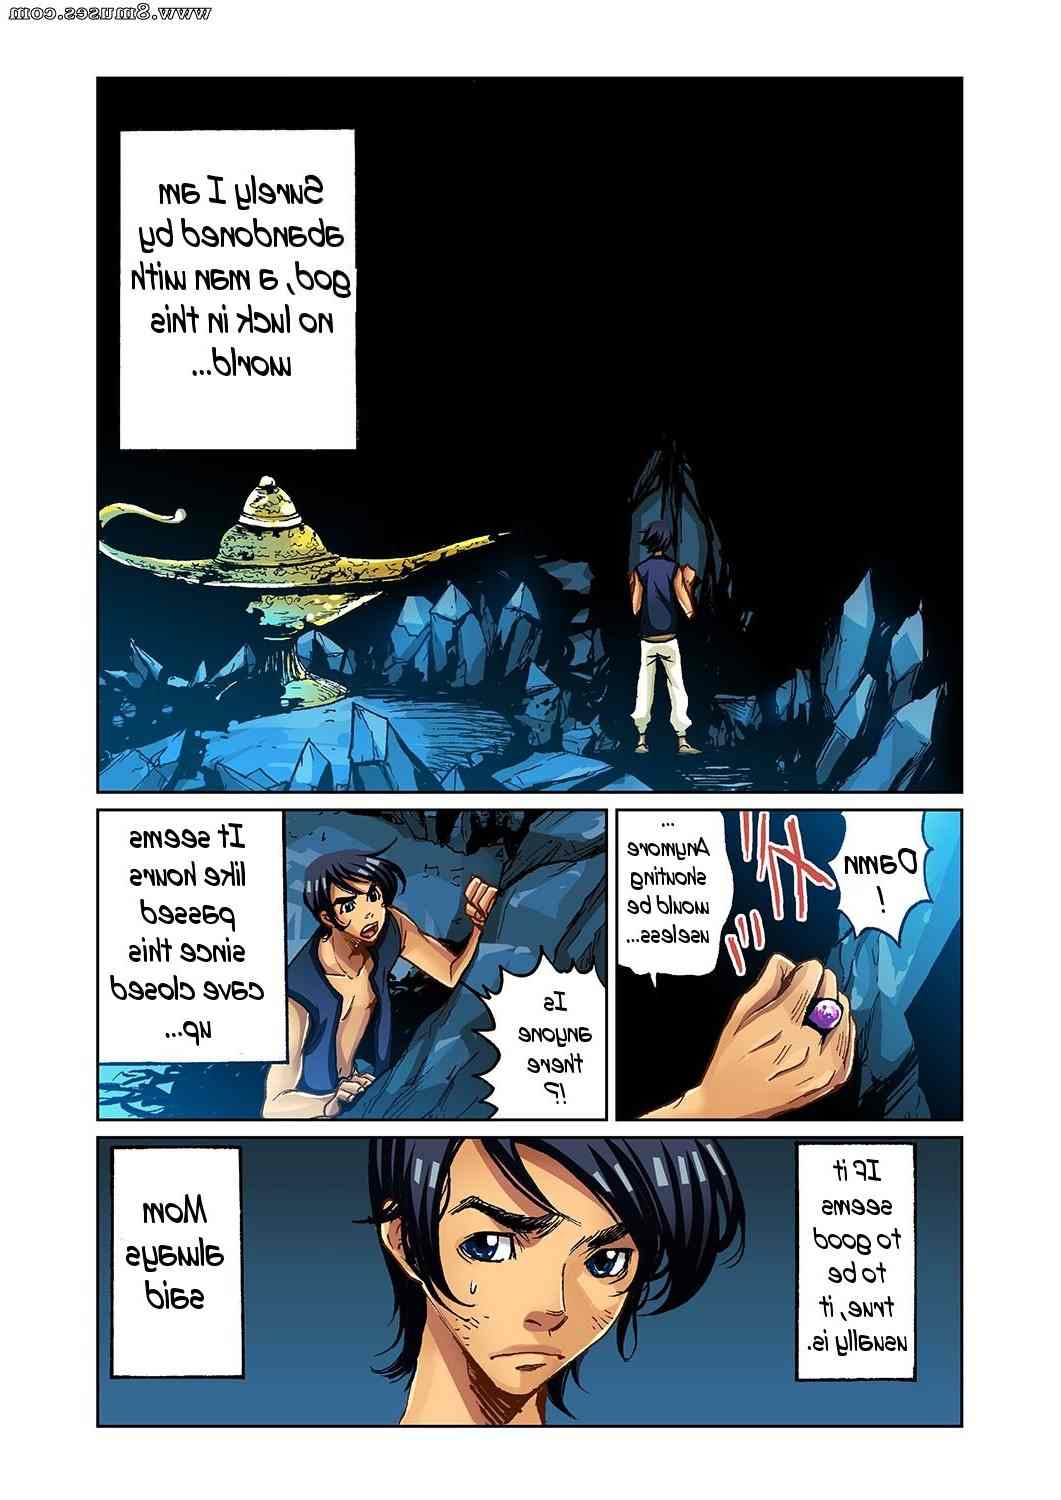 Hentai-and-Manga-English/Pirontan/Aladdin-And-The-Magic-Lamp Aladdin_And_The_Magic_Lamp__8muses_-_Sex_and_Porn_Comics_2.jpg